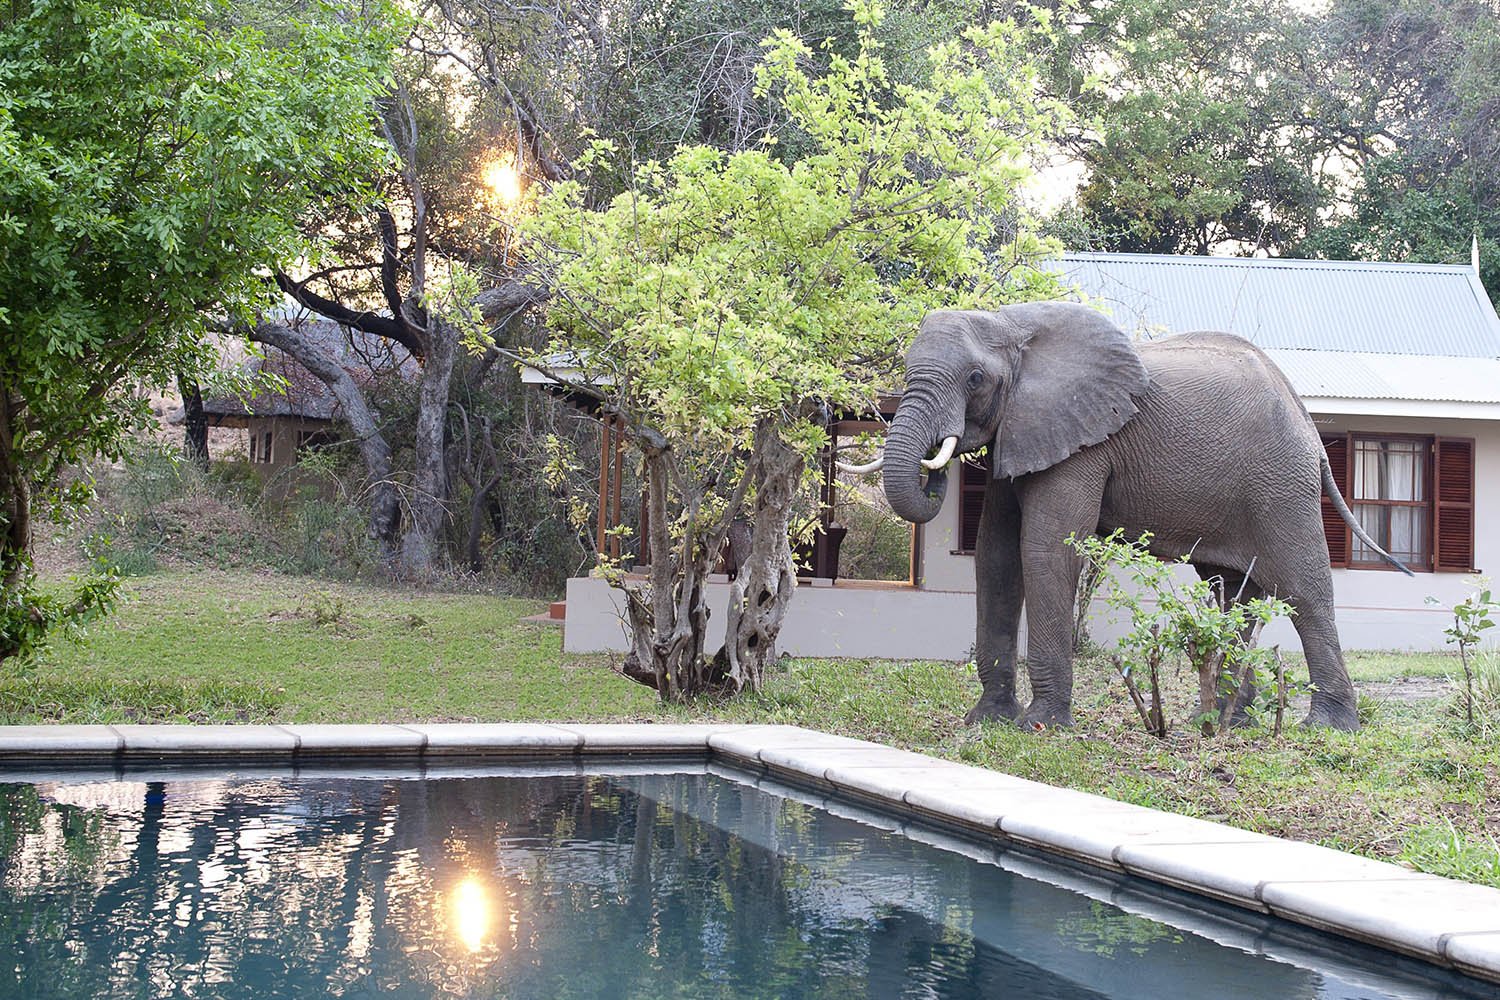 baines river camp zambia-in-style-safari-packages-lodges-lower-zambezi-spectacular-scenery-elephant-swimming-pool